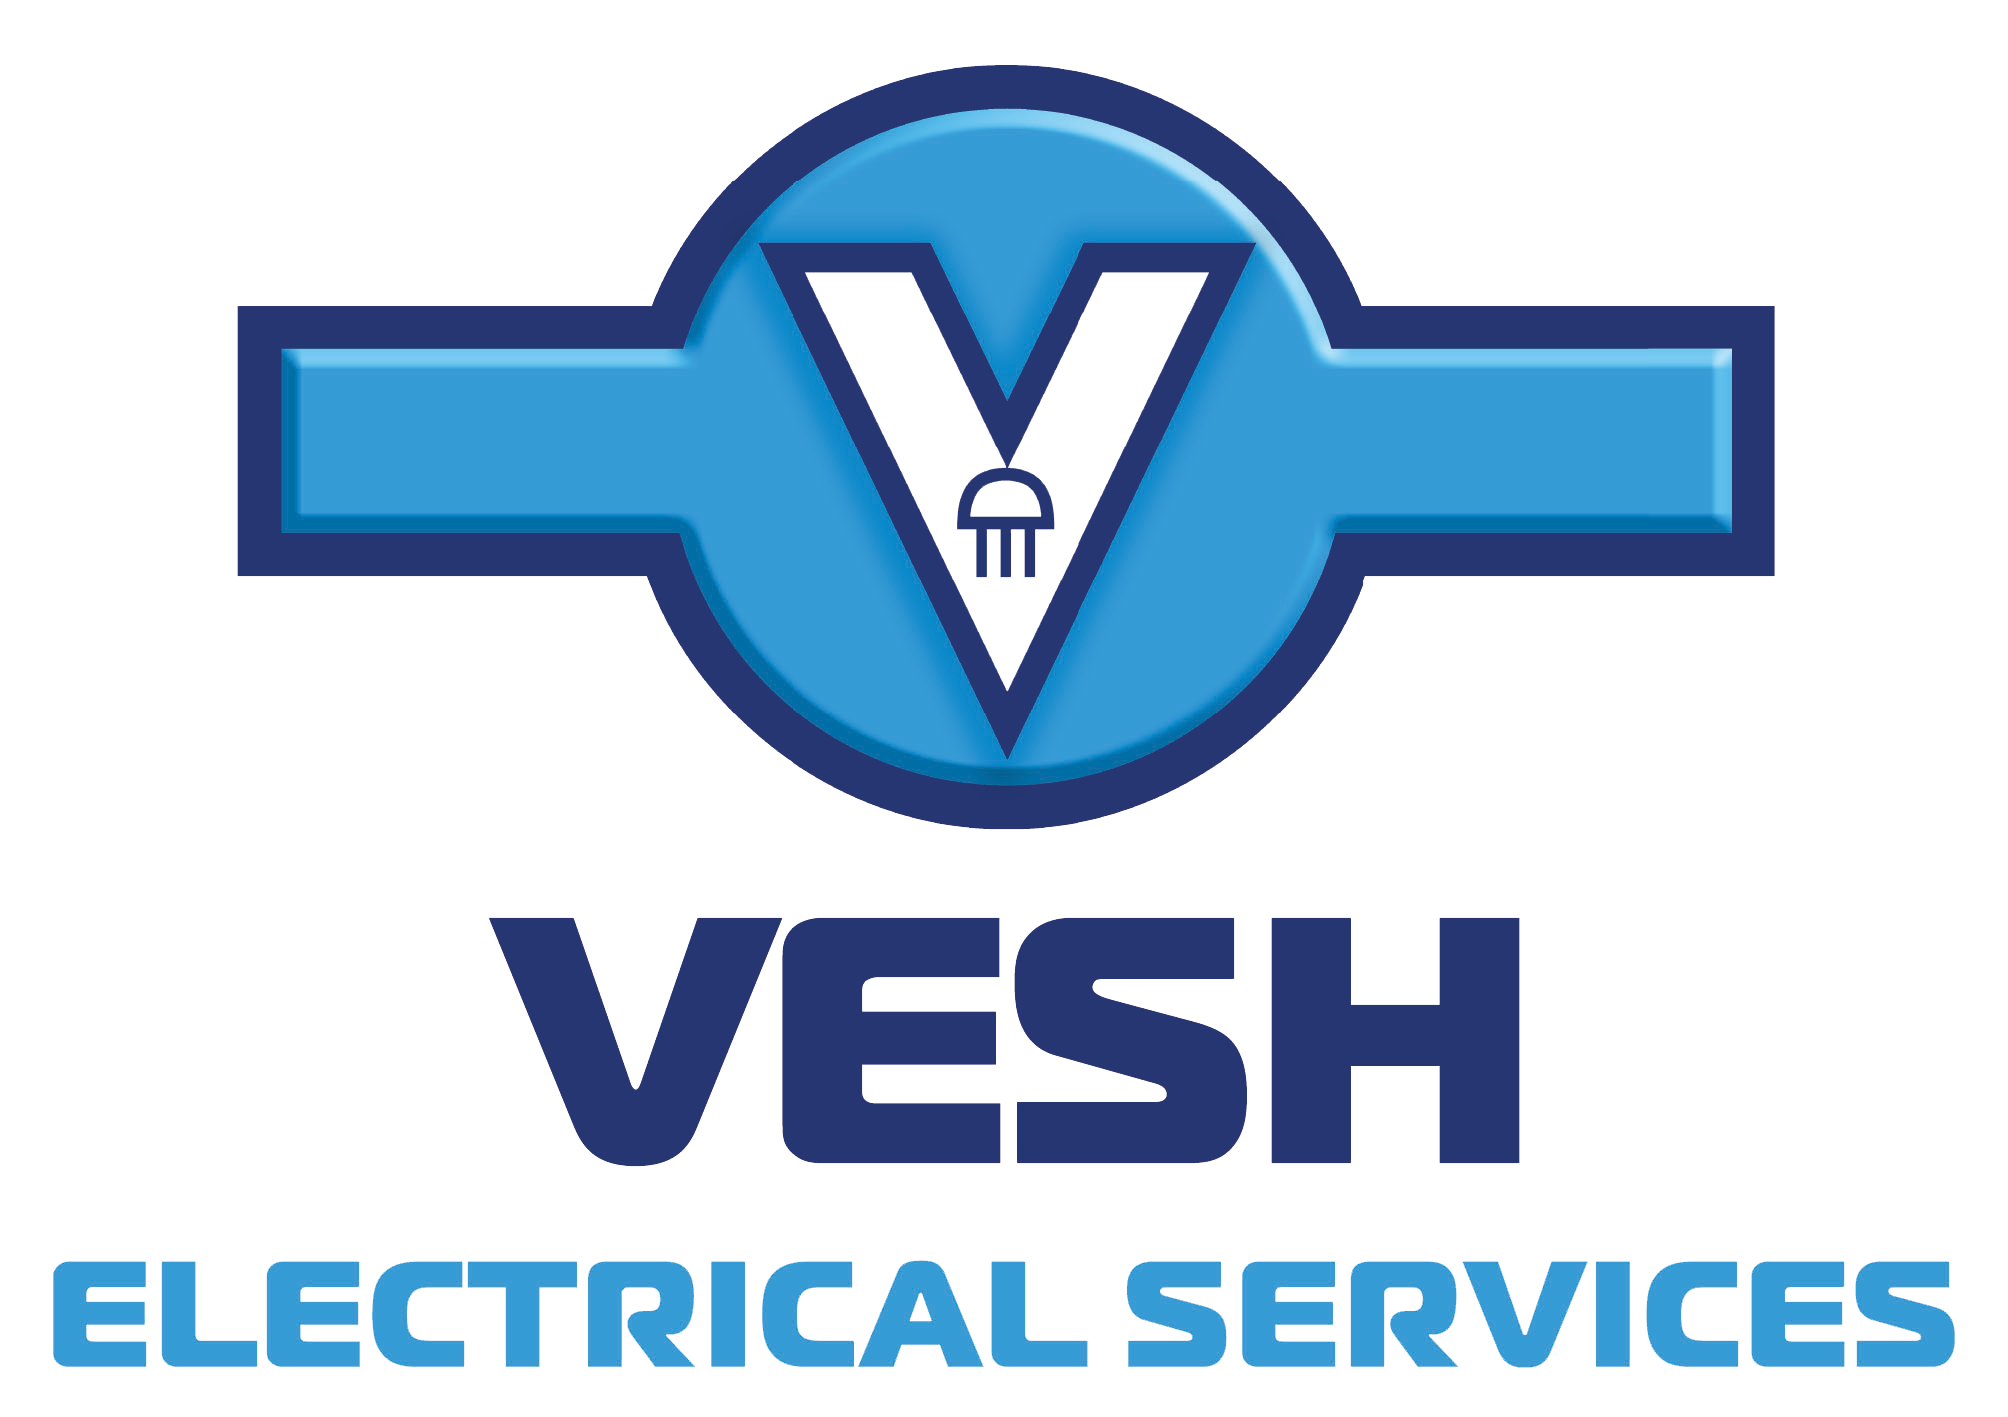 Vesh_Electrical_Services_Logo.png